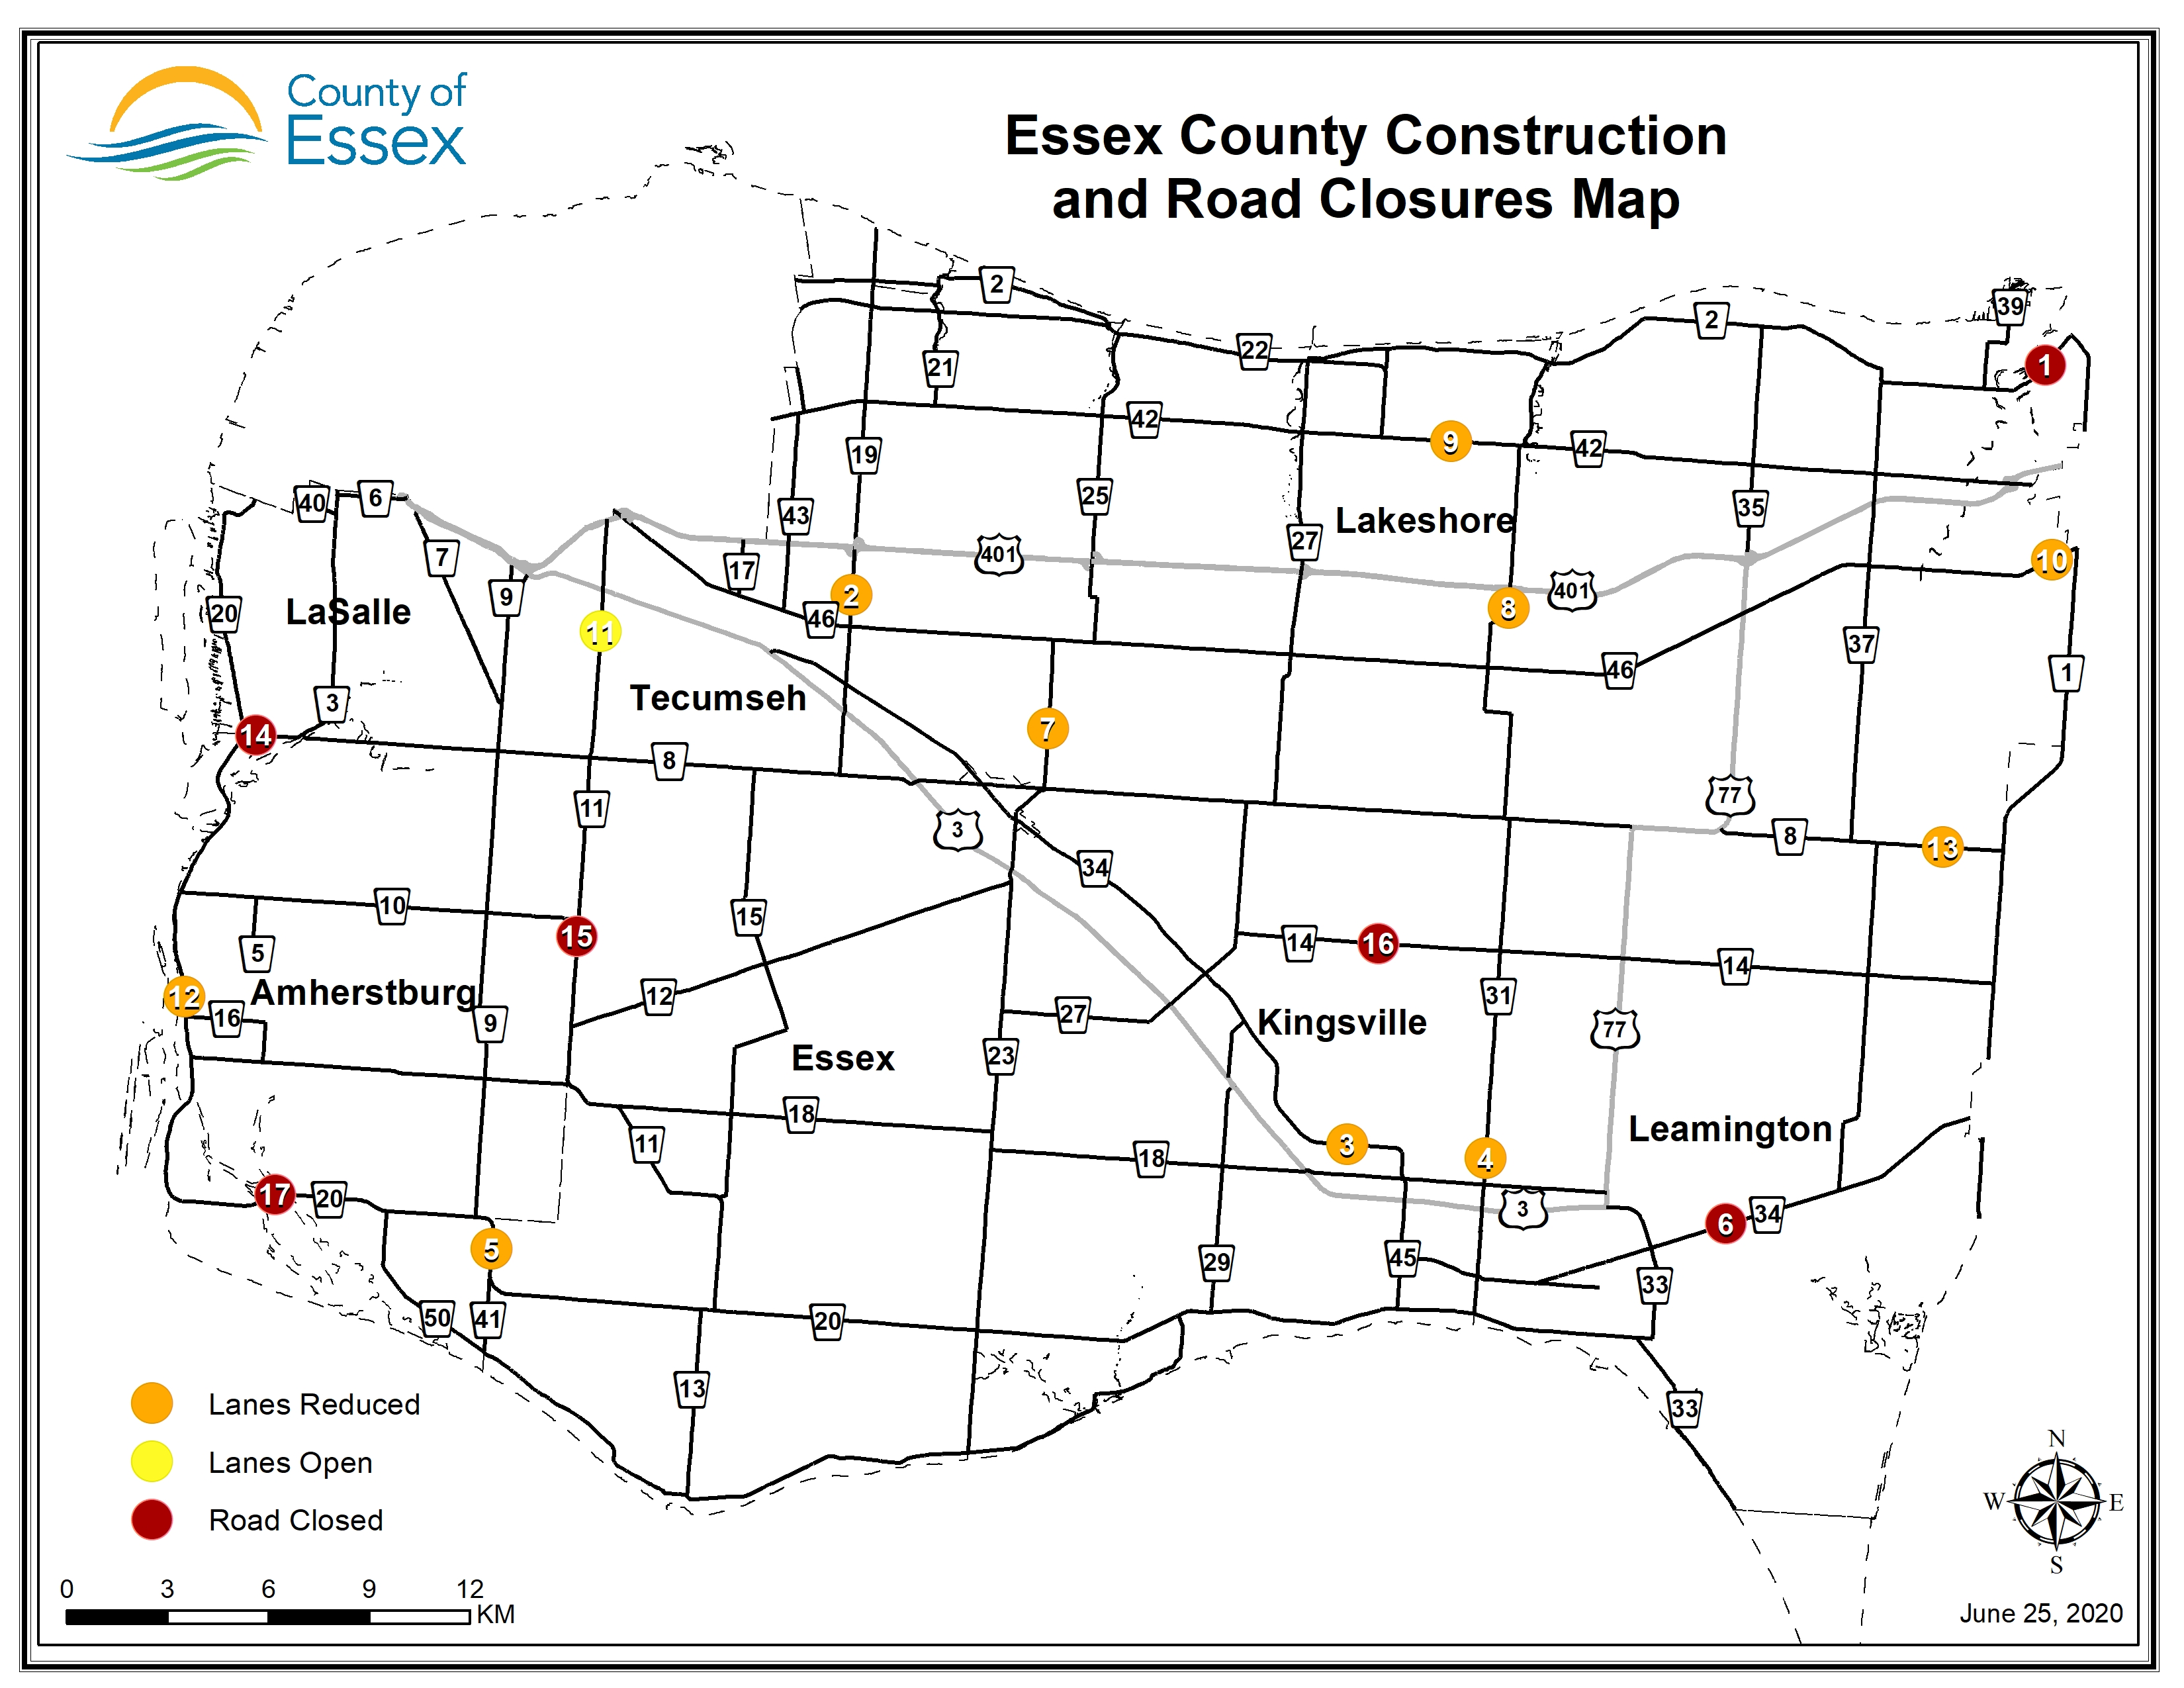 A map of Essex County showing road closures and lane restrictions for June 25, 2020.